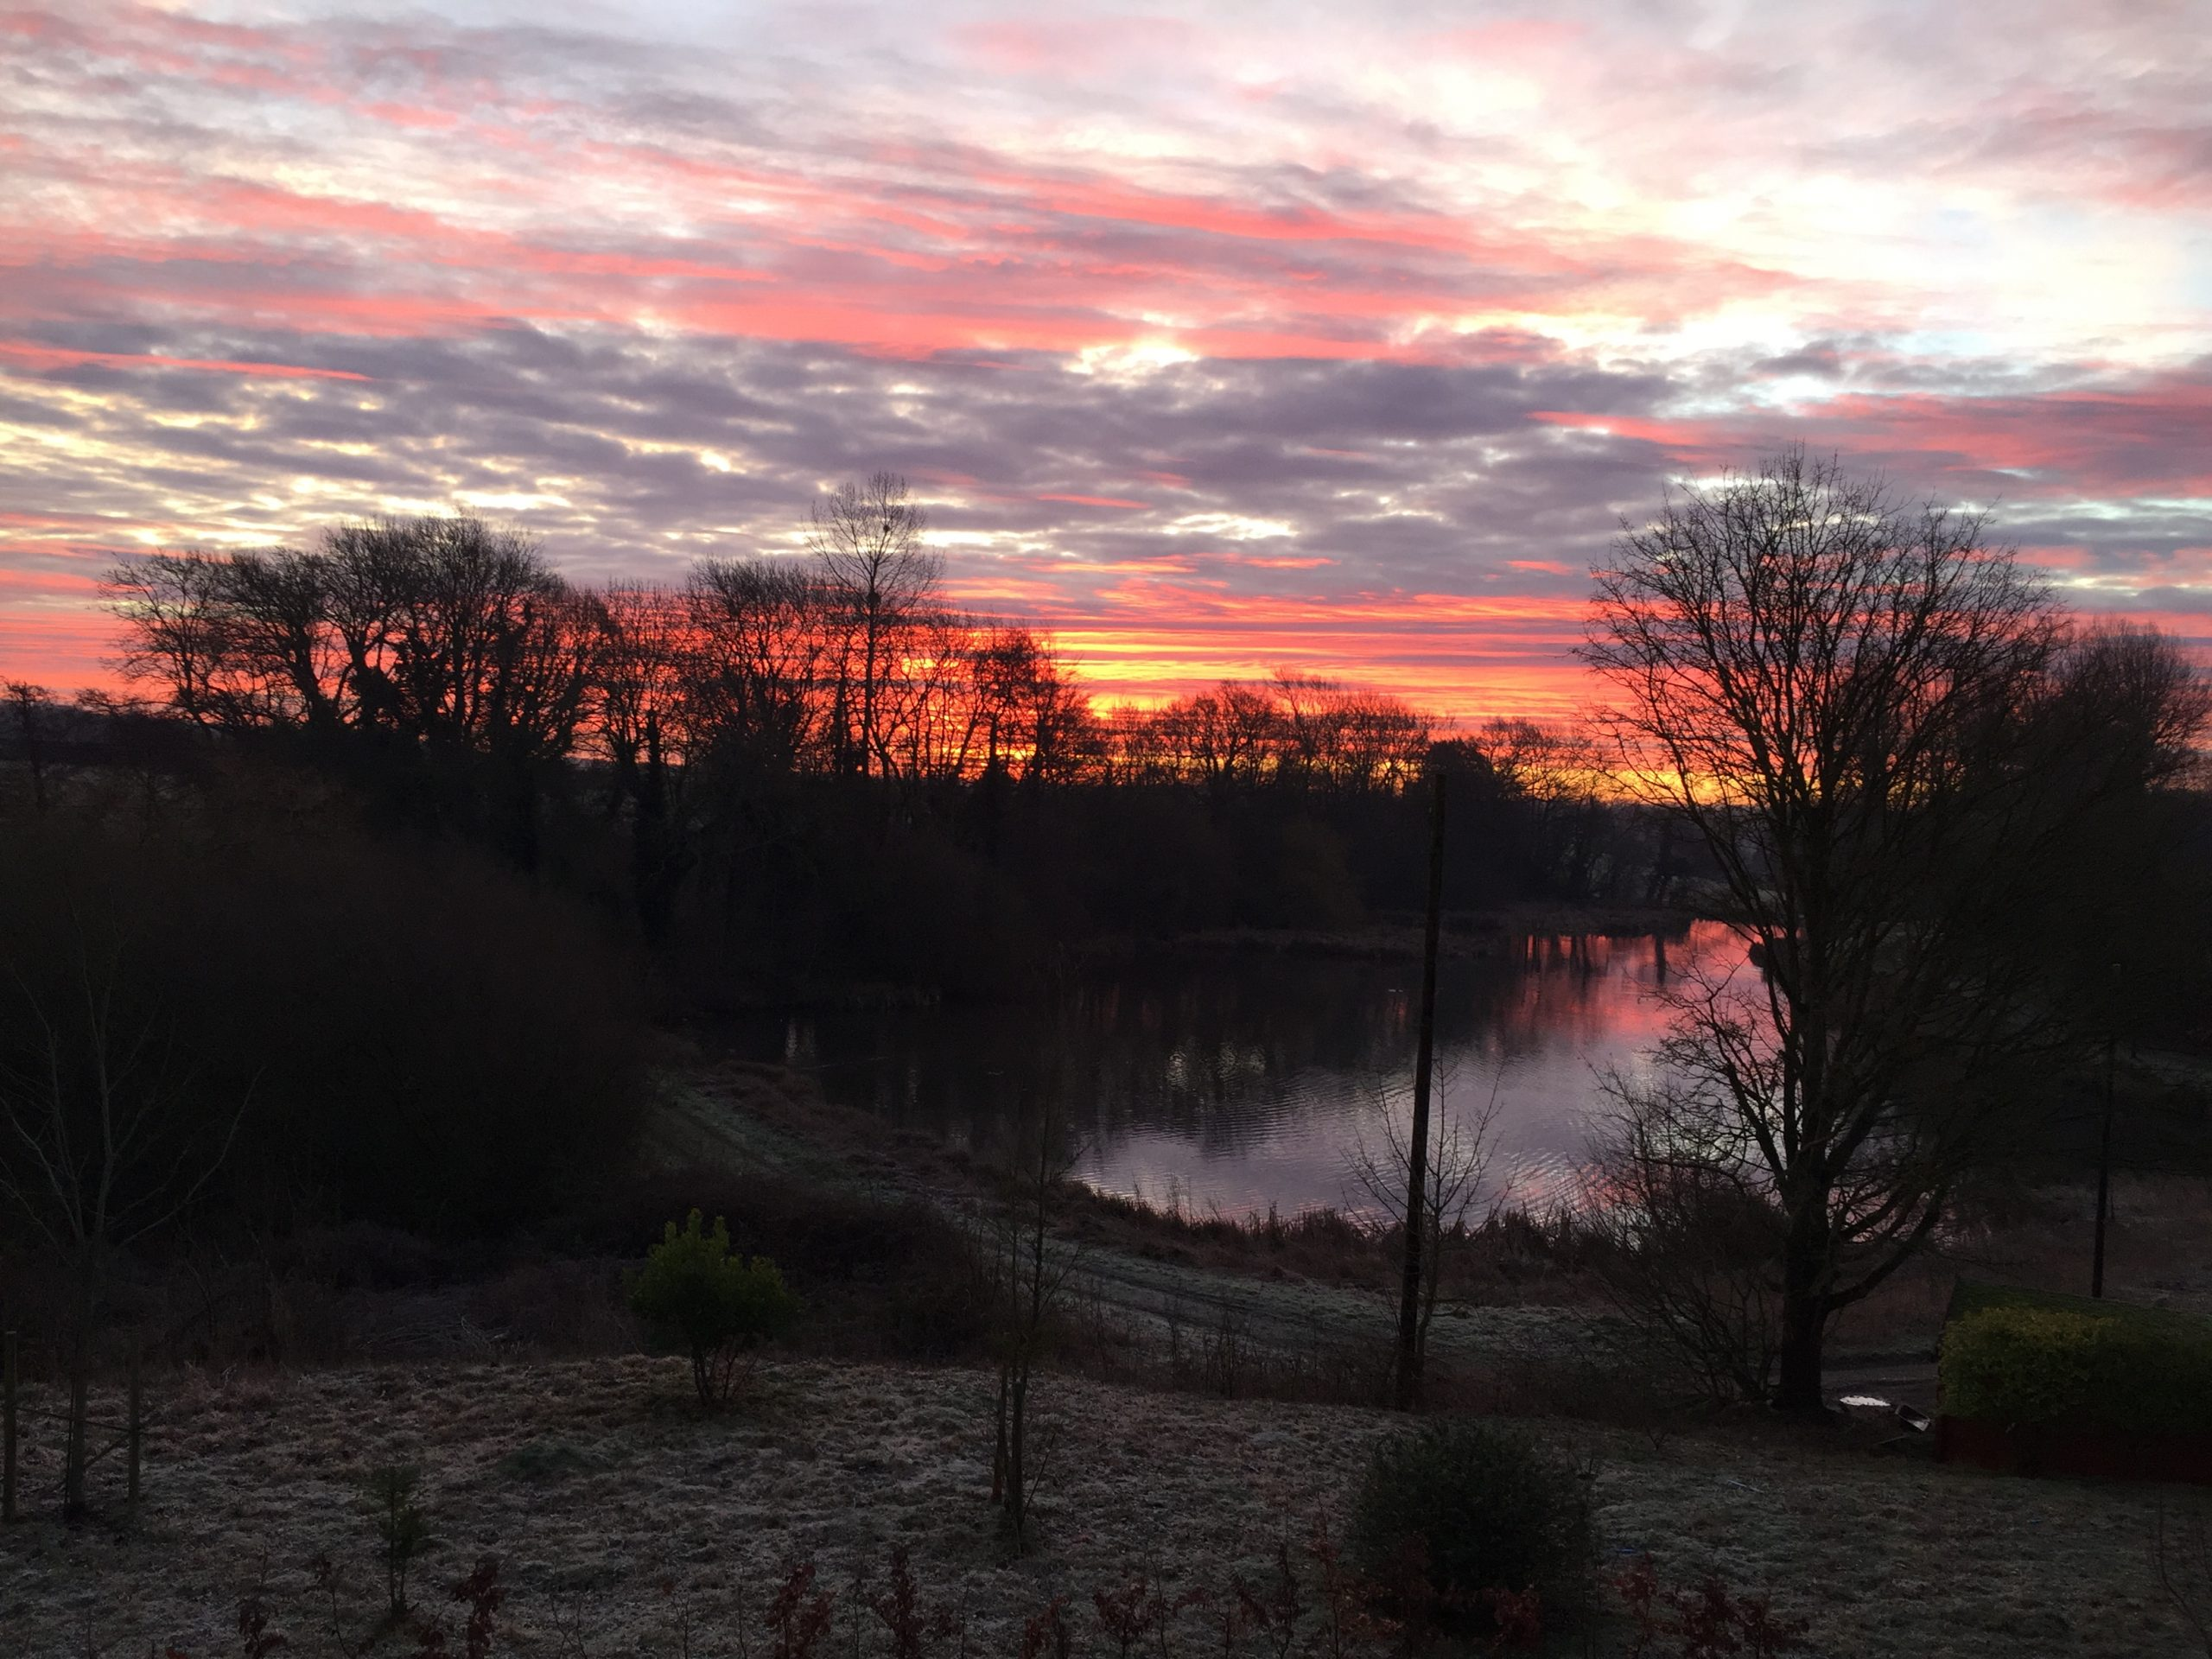 Sunrise over Bowley Mill pond